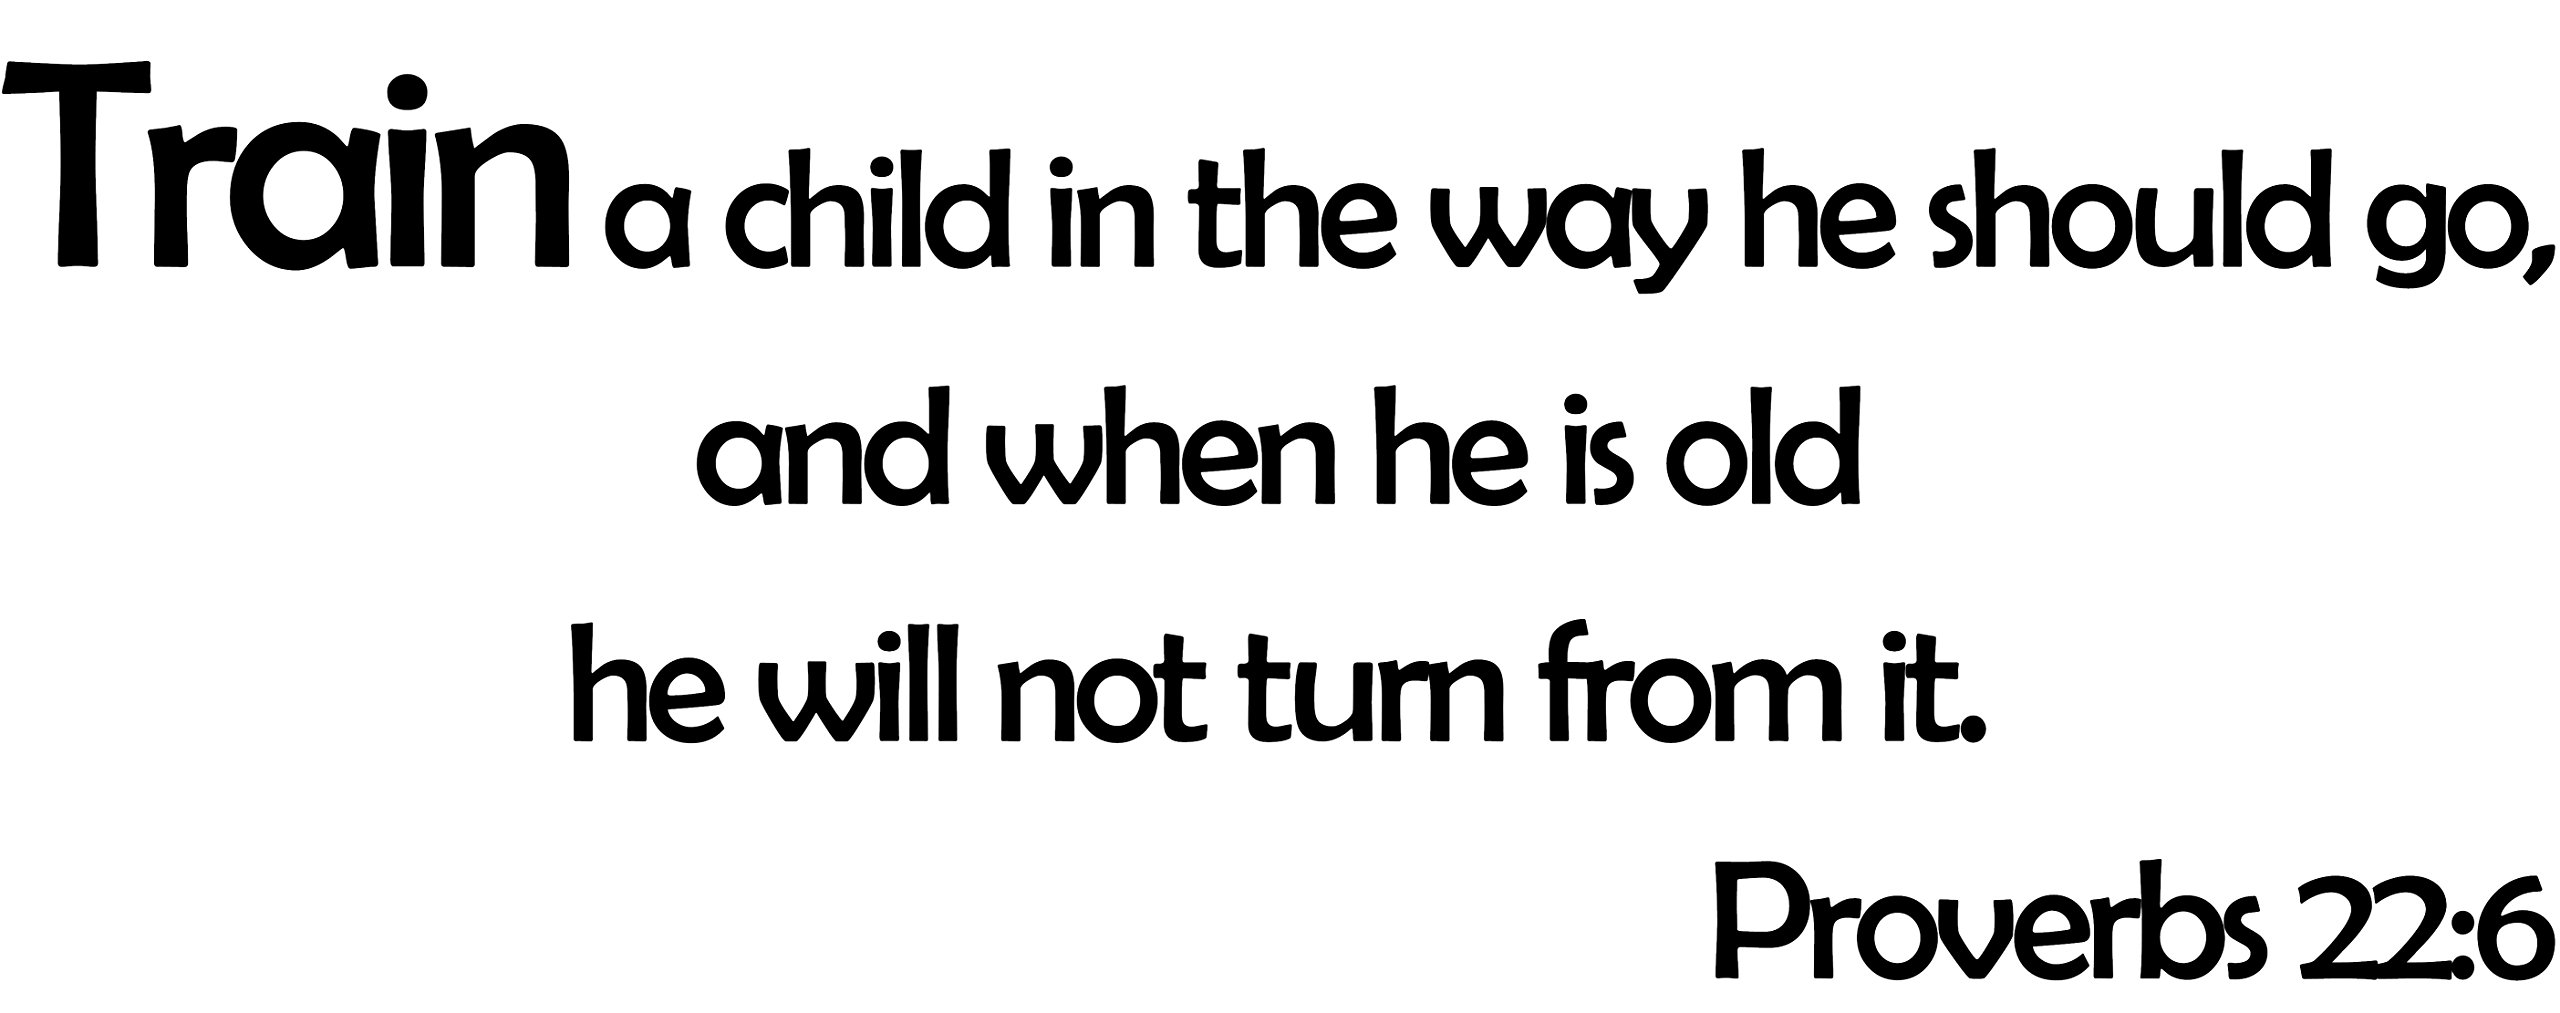 Wall Decal Quote Proverbs 22:6 Train A Child In The Way He Should Go Scripture Sticker